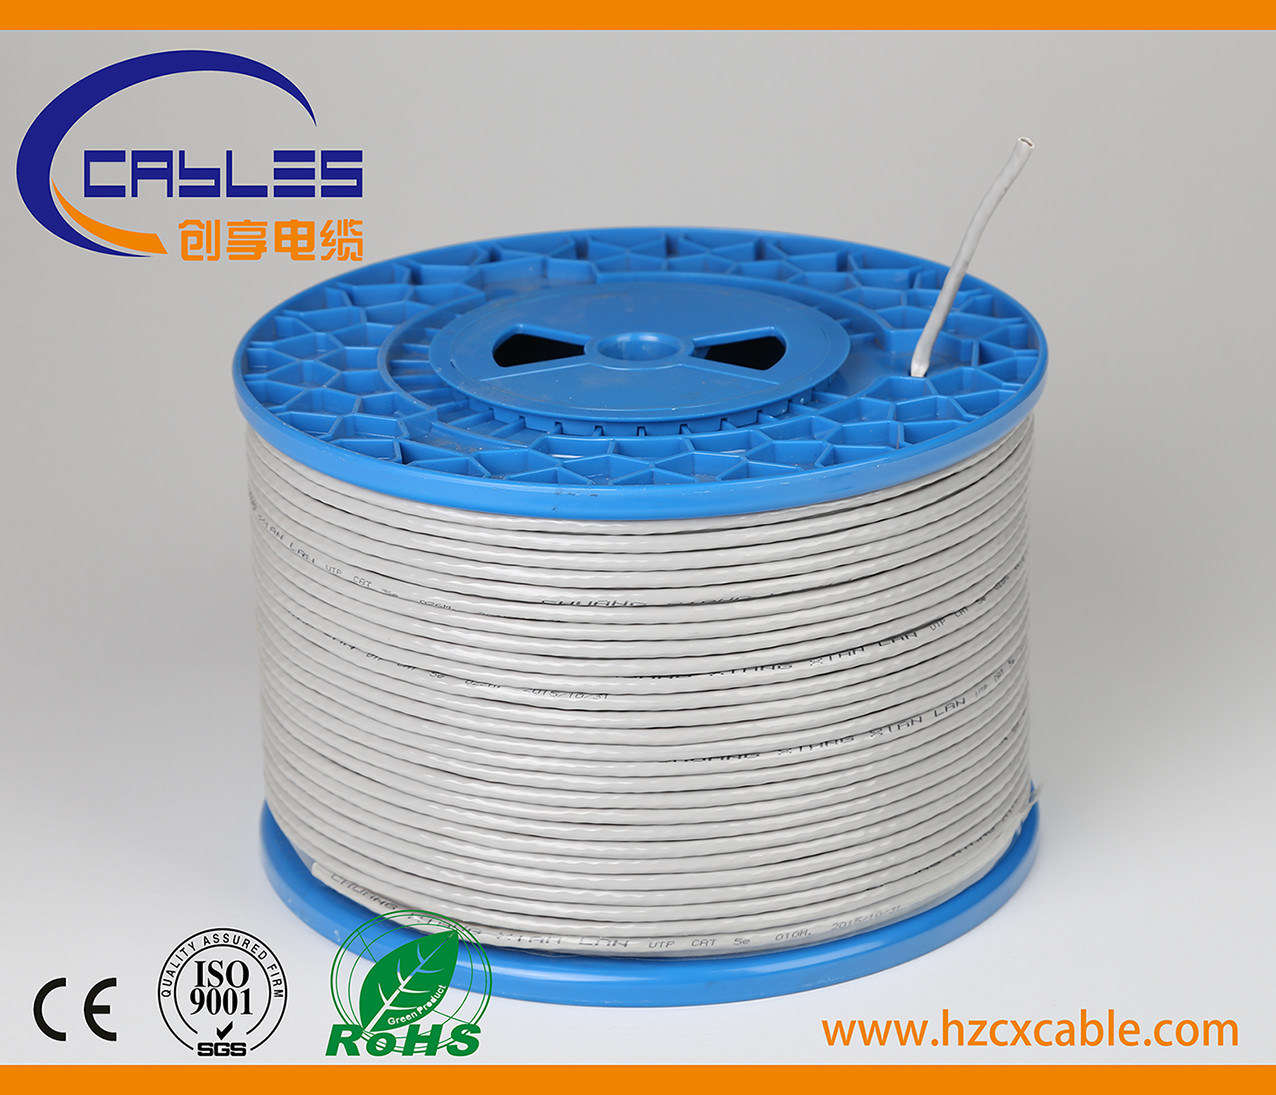 RG6 Rg59 Coxial Cable Meet Your Market with Ce Certification